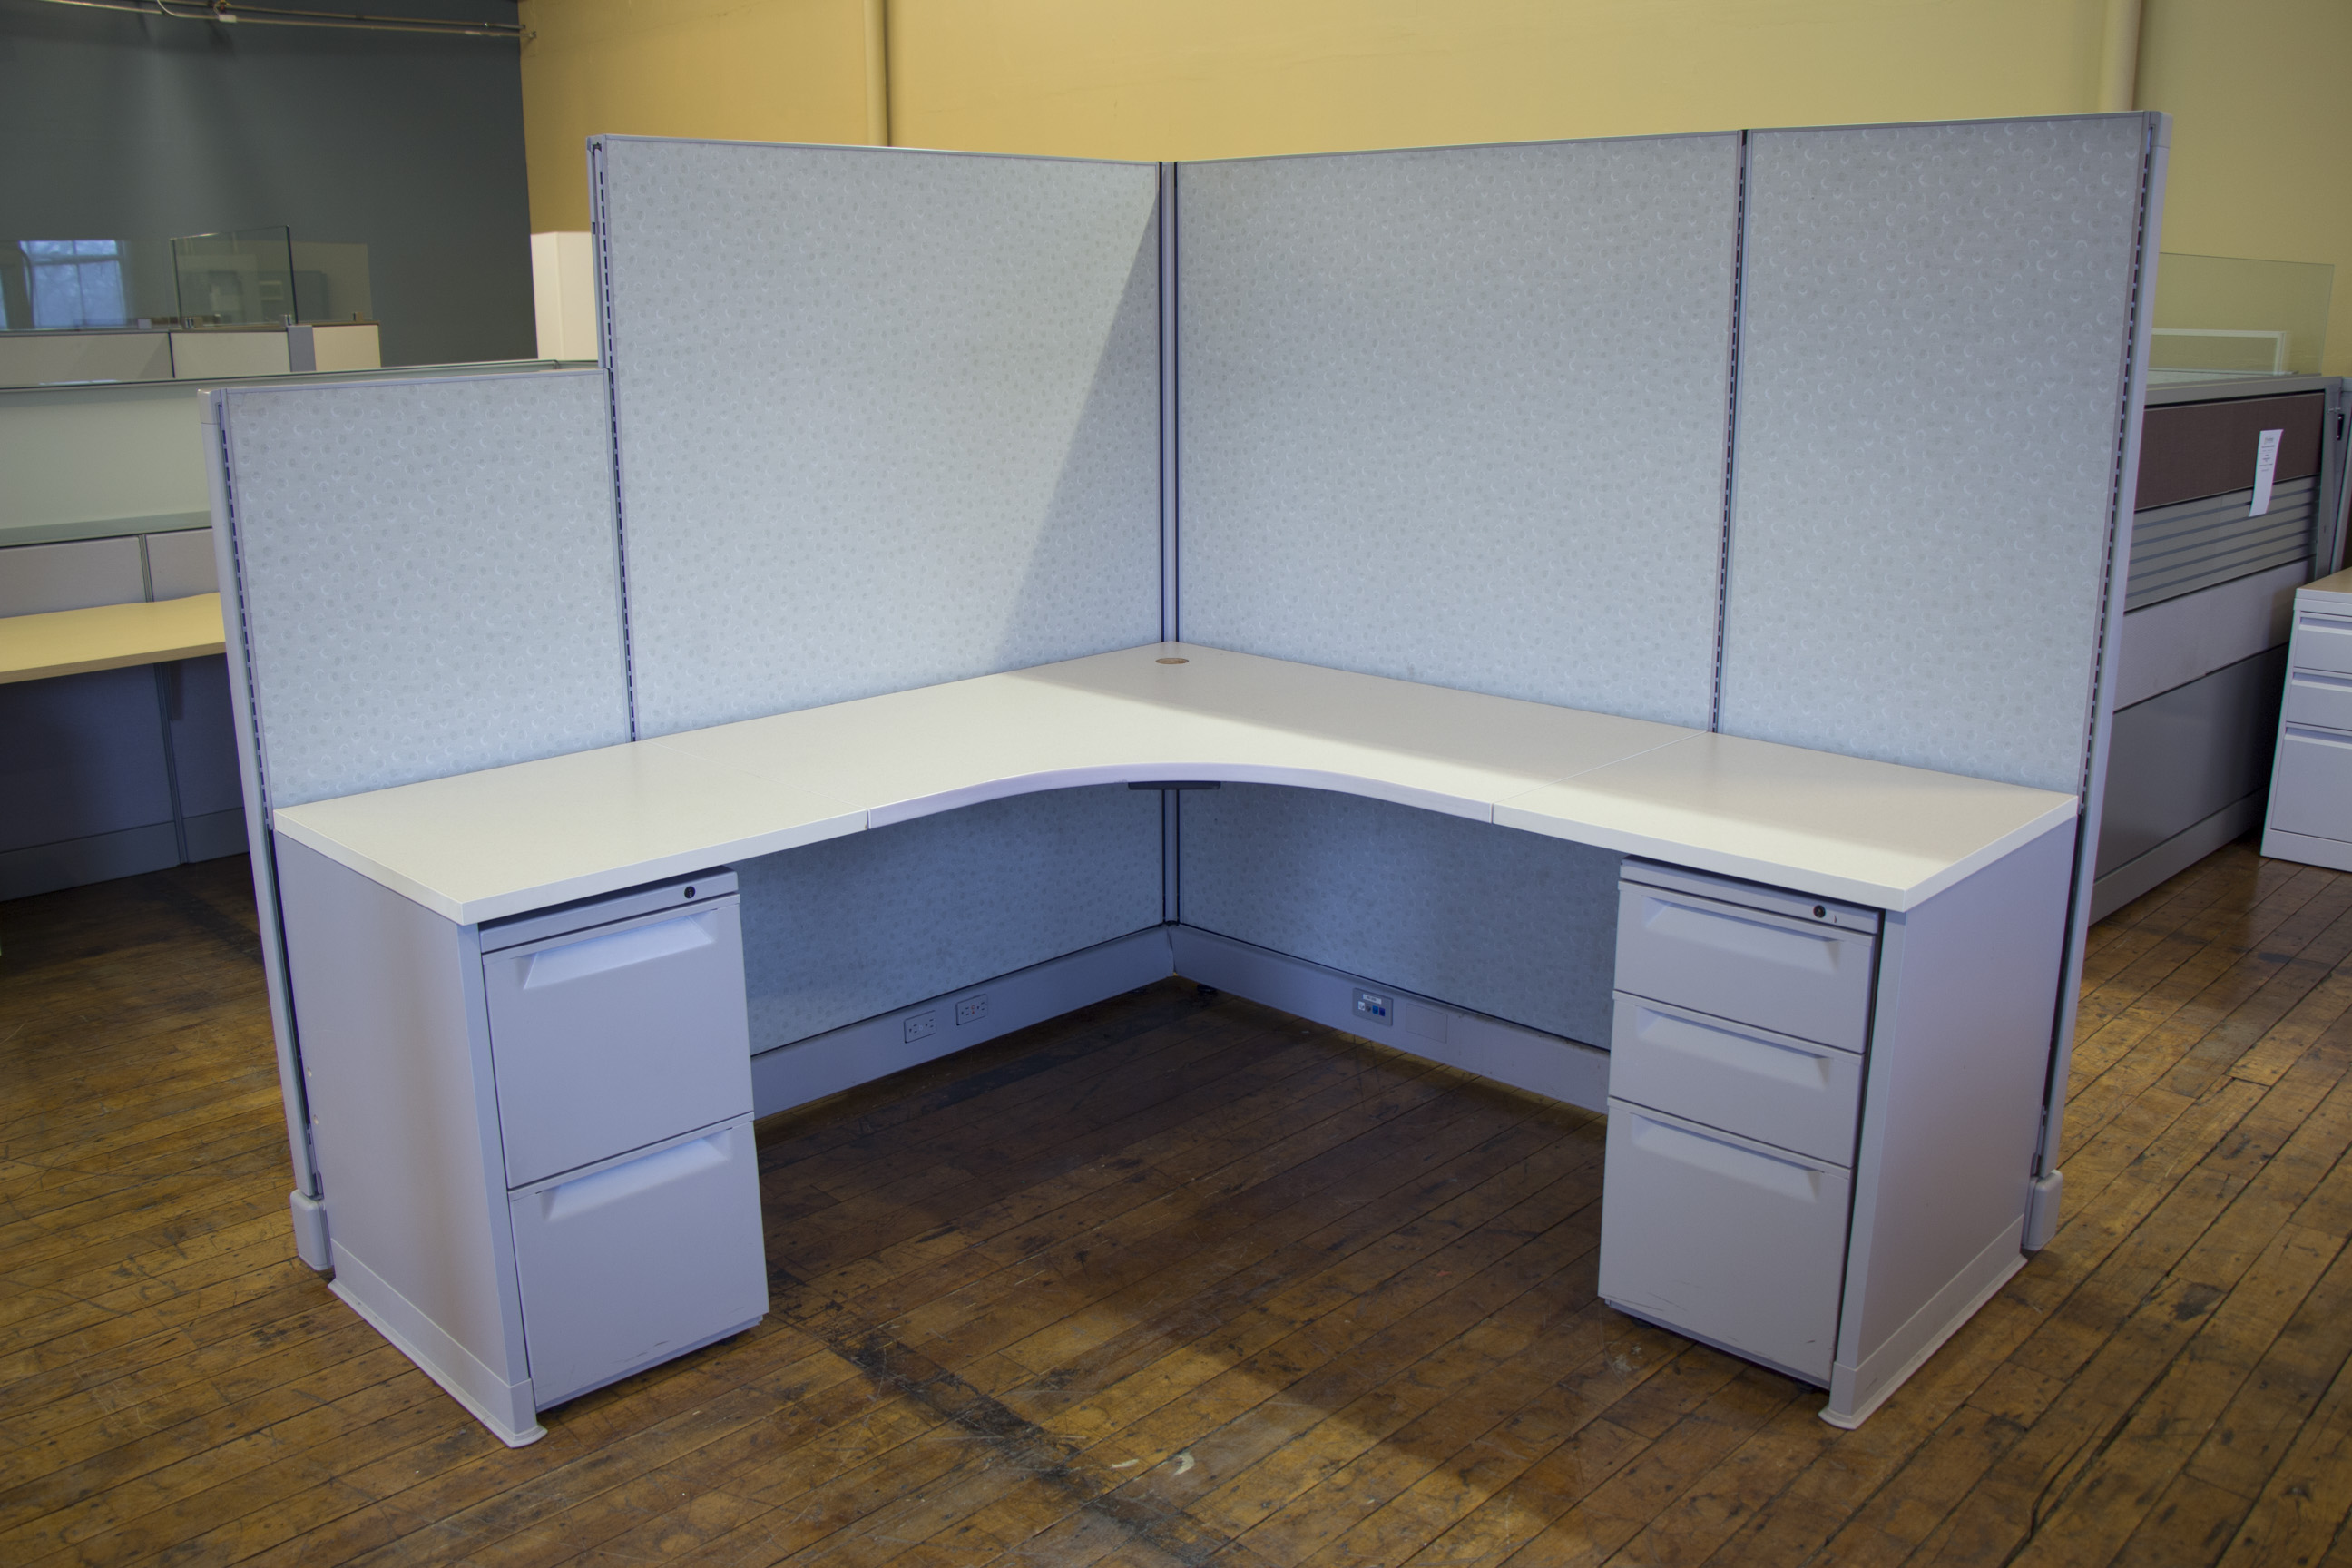 Herman Miller AO2 Cubicles In 6x6 6x8 And 8x8 O Peartree Office Furniture